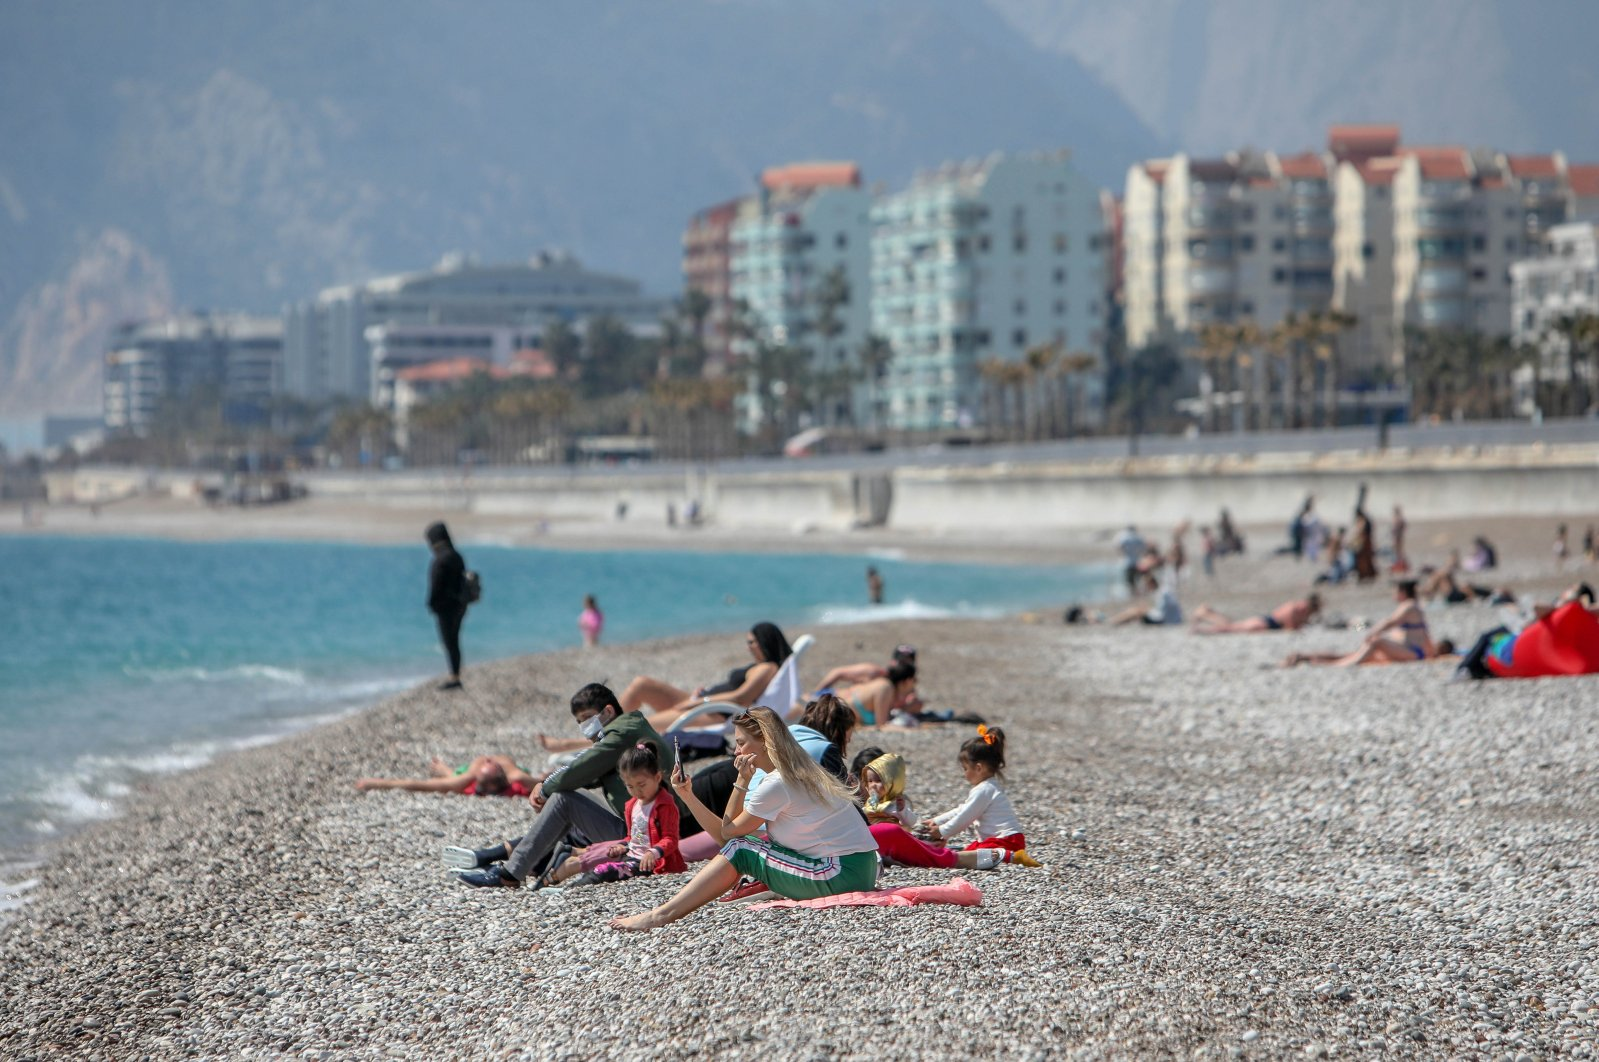 People on a beach in the Mediterranean resort province Antalya, southern Turkey, April 3, 2021. (DHA Photo)